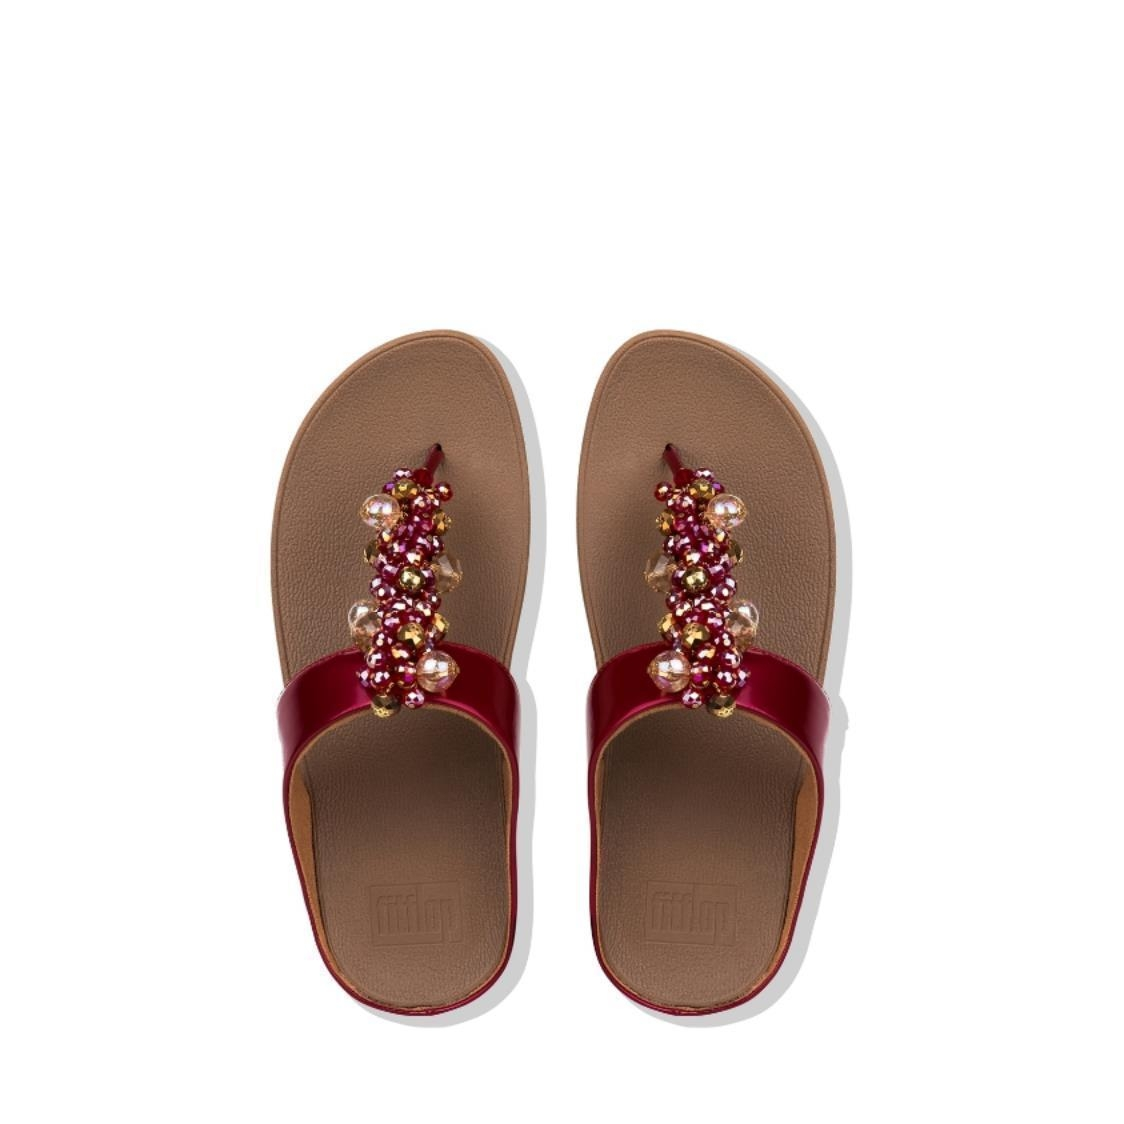 Deco Pearlised Patent Toe-Thongs Fire Red